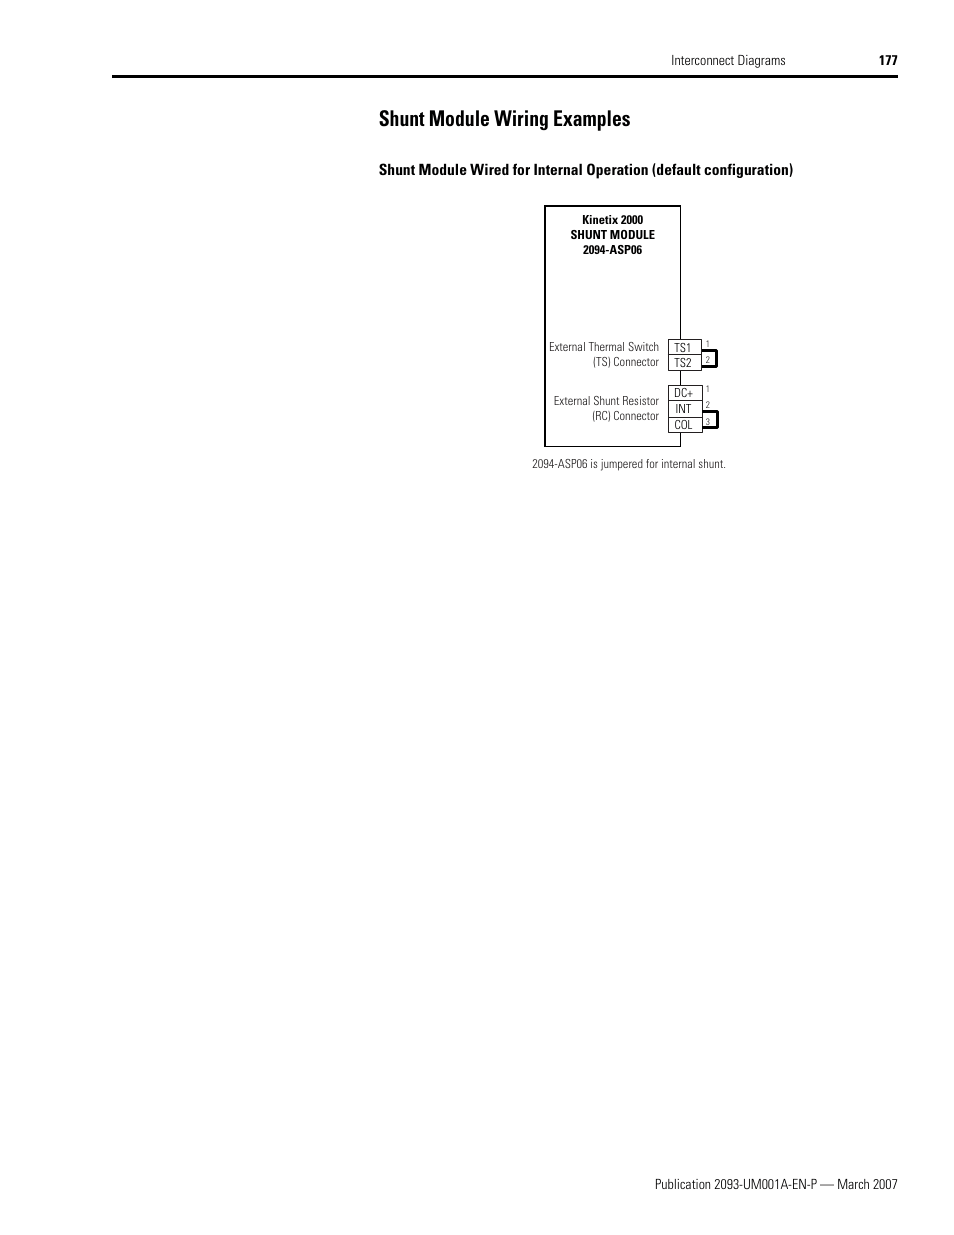 medium resolution of shunt module wiring examples rockwell automation 2093 xxxx kinetix 2000 multi axis servo drive user manual user manual page 177 226